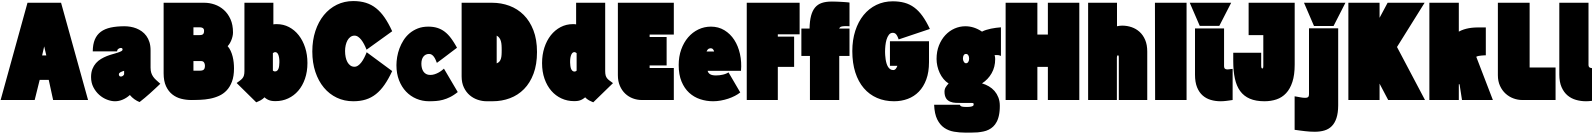 Generation Headline Condensed Mammoth Font